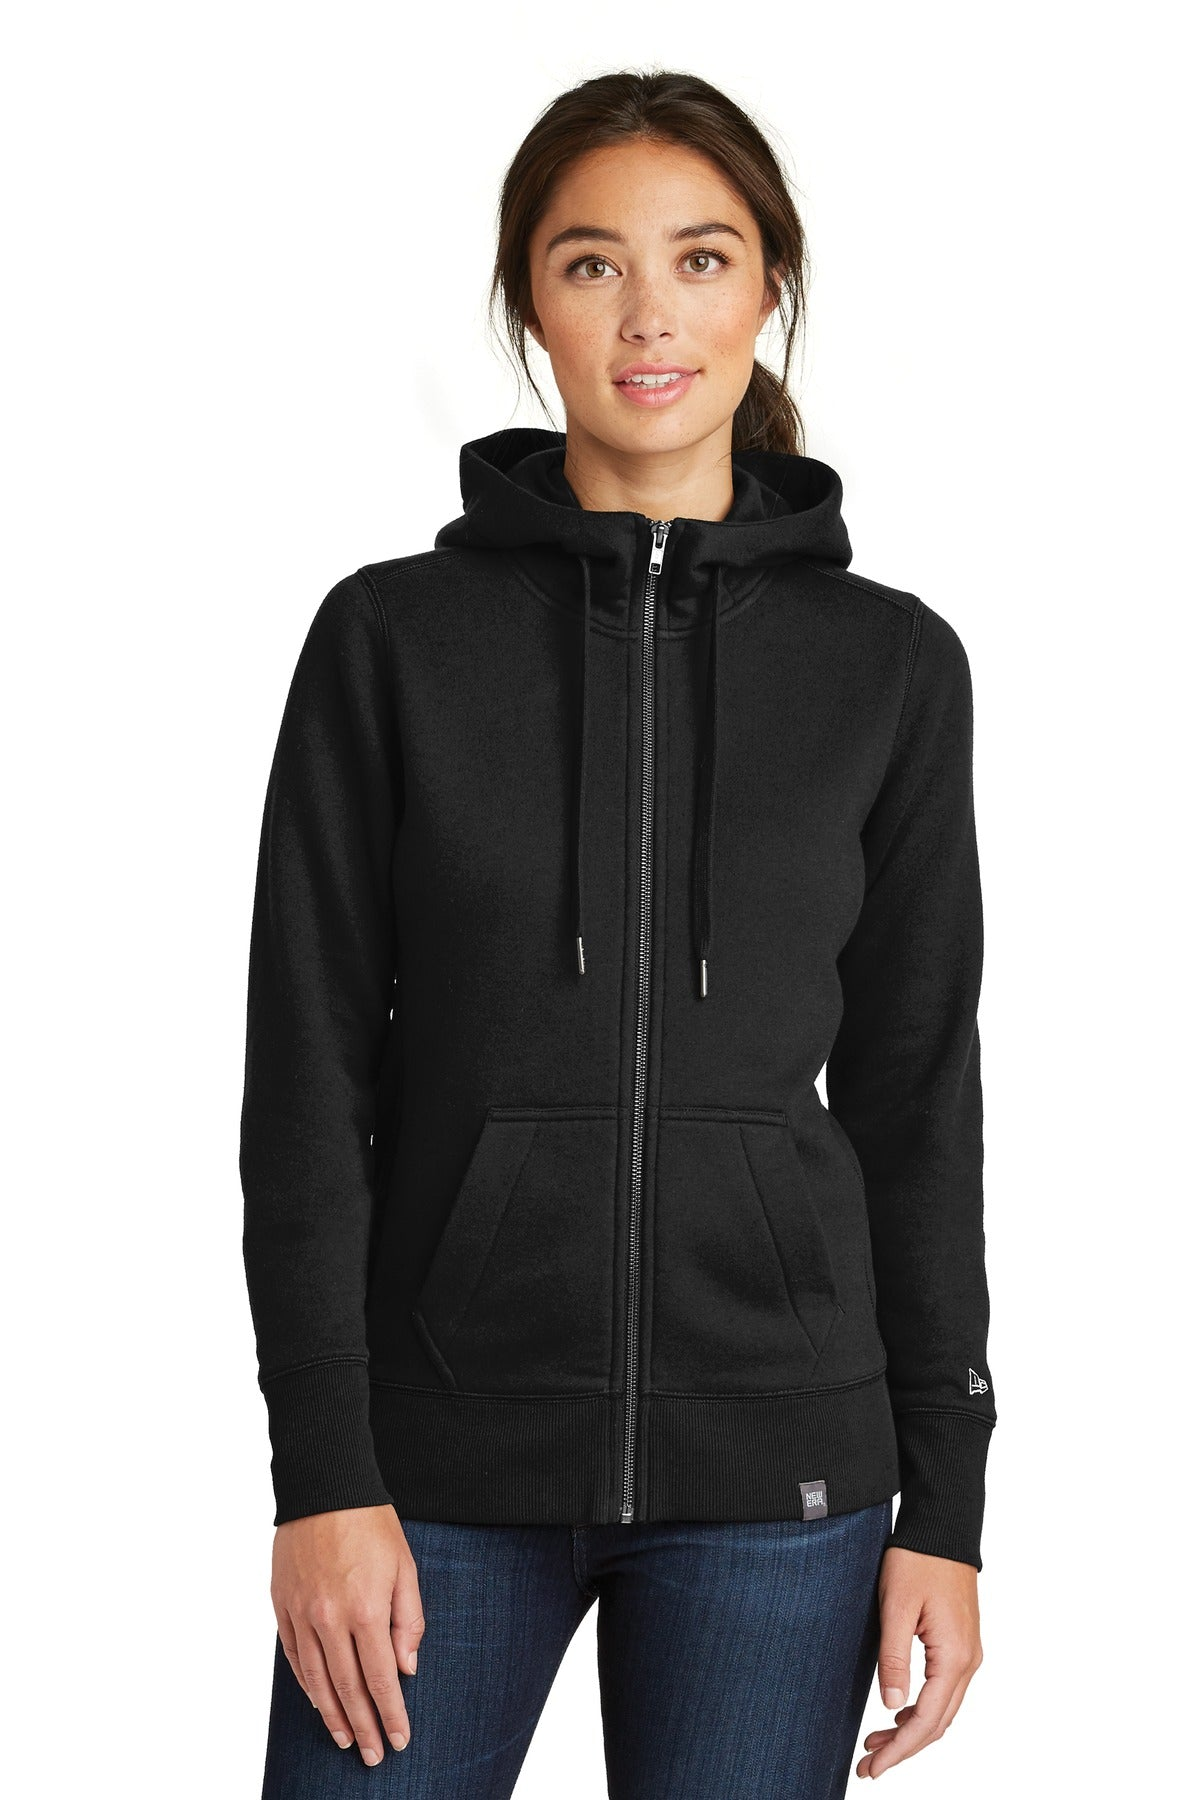 New Era ® Ladies French Terry Full-Zip Hoodie. LNEA502